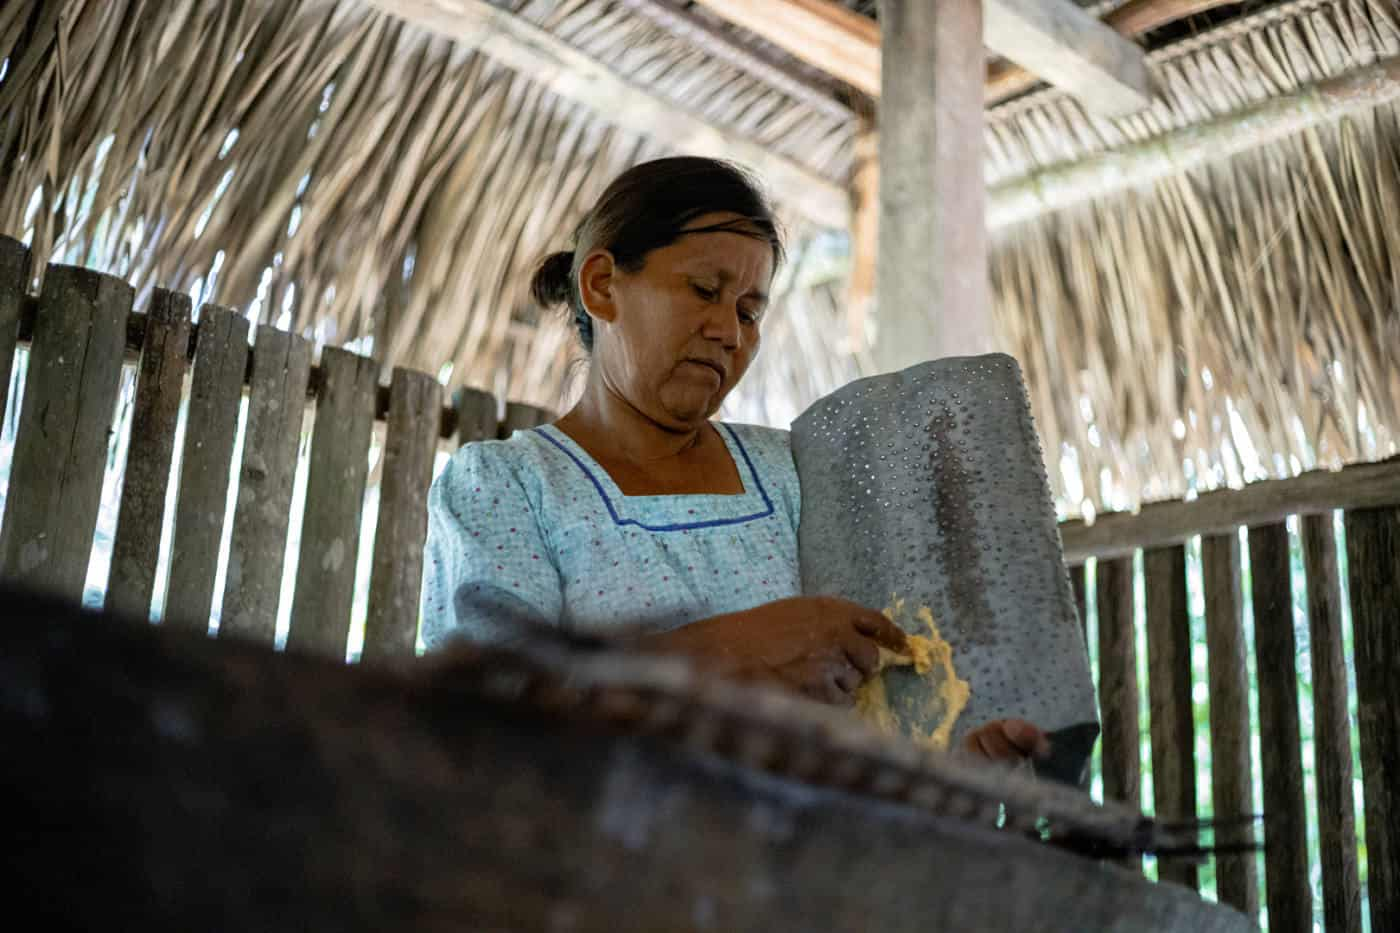 A Kichwa woman making kassava bread in an Amazon community